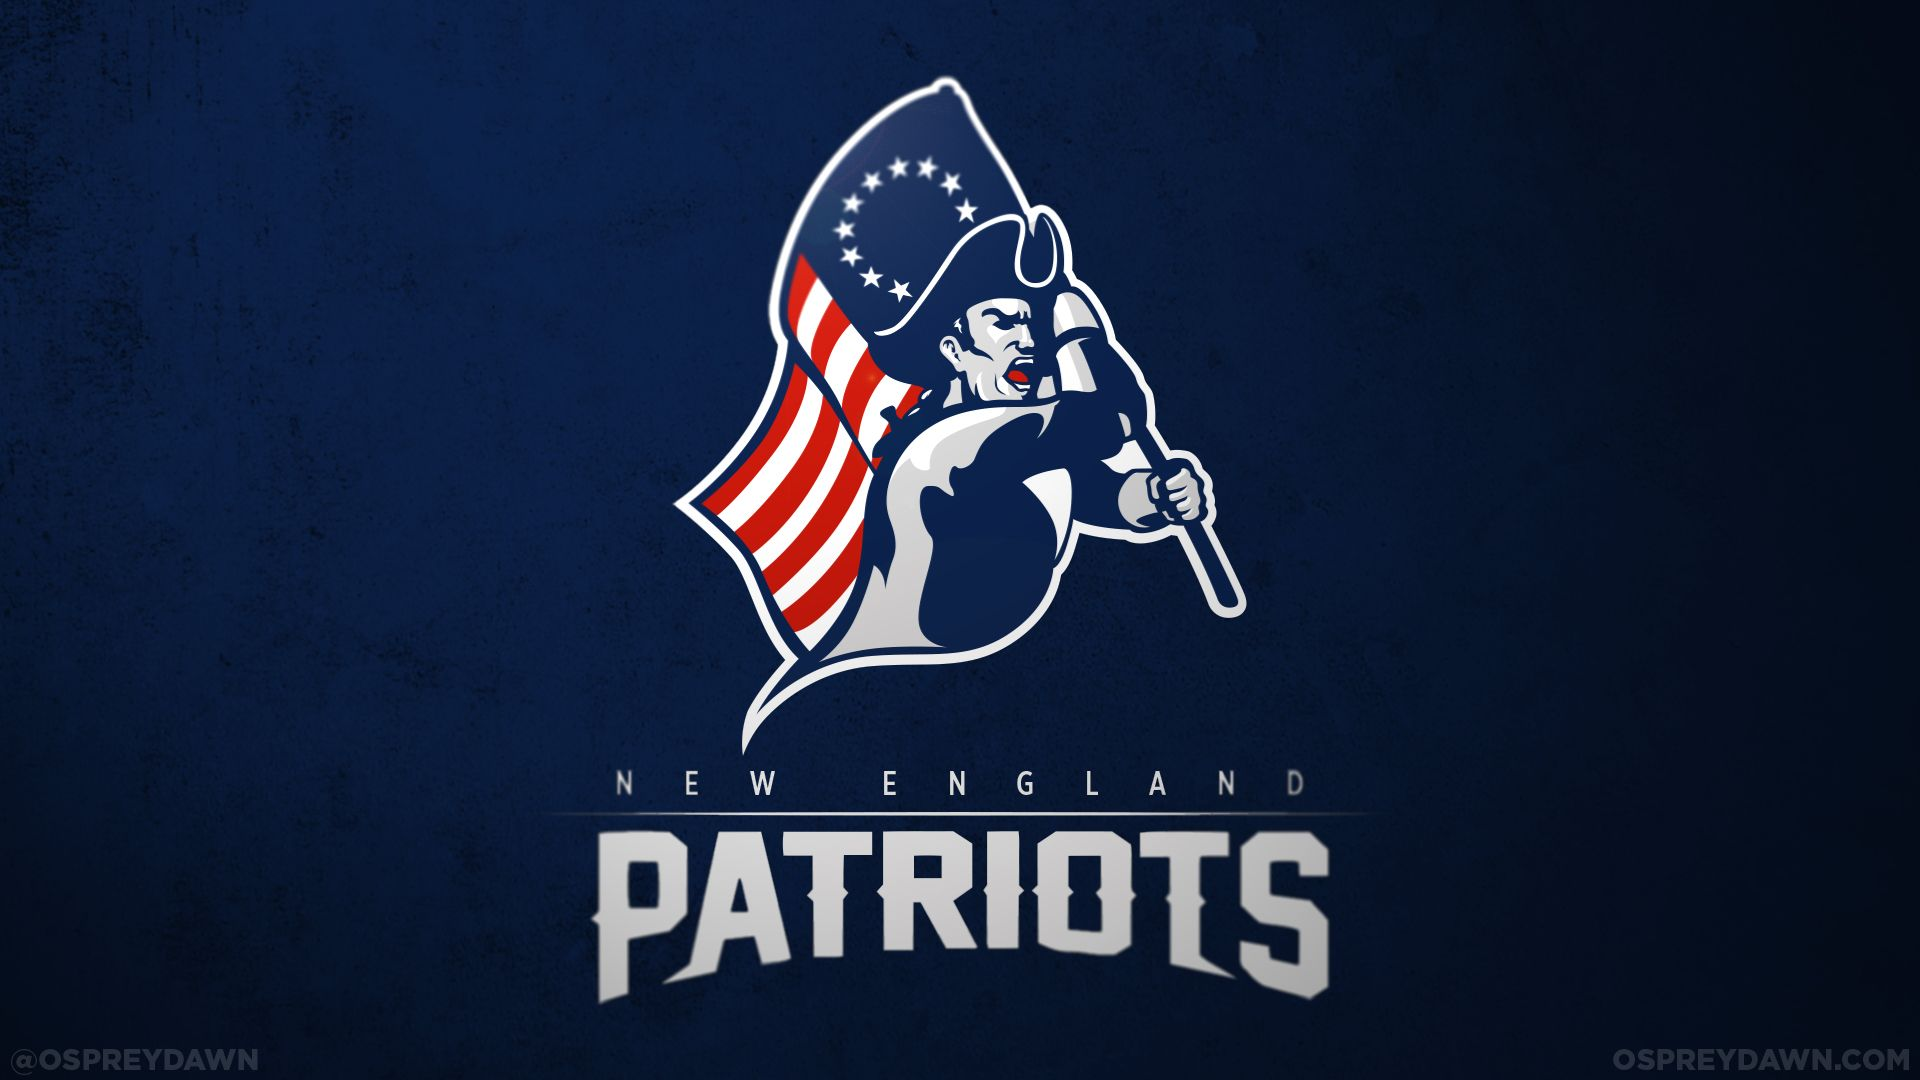 The New England Patriots Osprey Dawn New England Patriots Logo New England Patriots New England Patriots Wallpaper